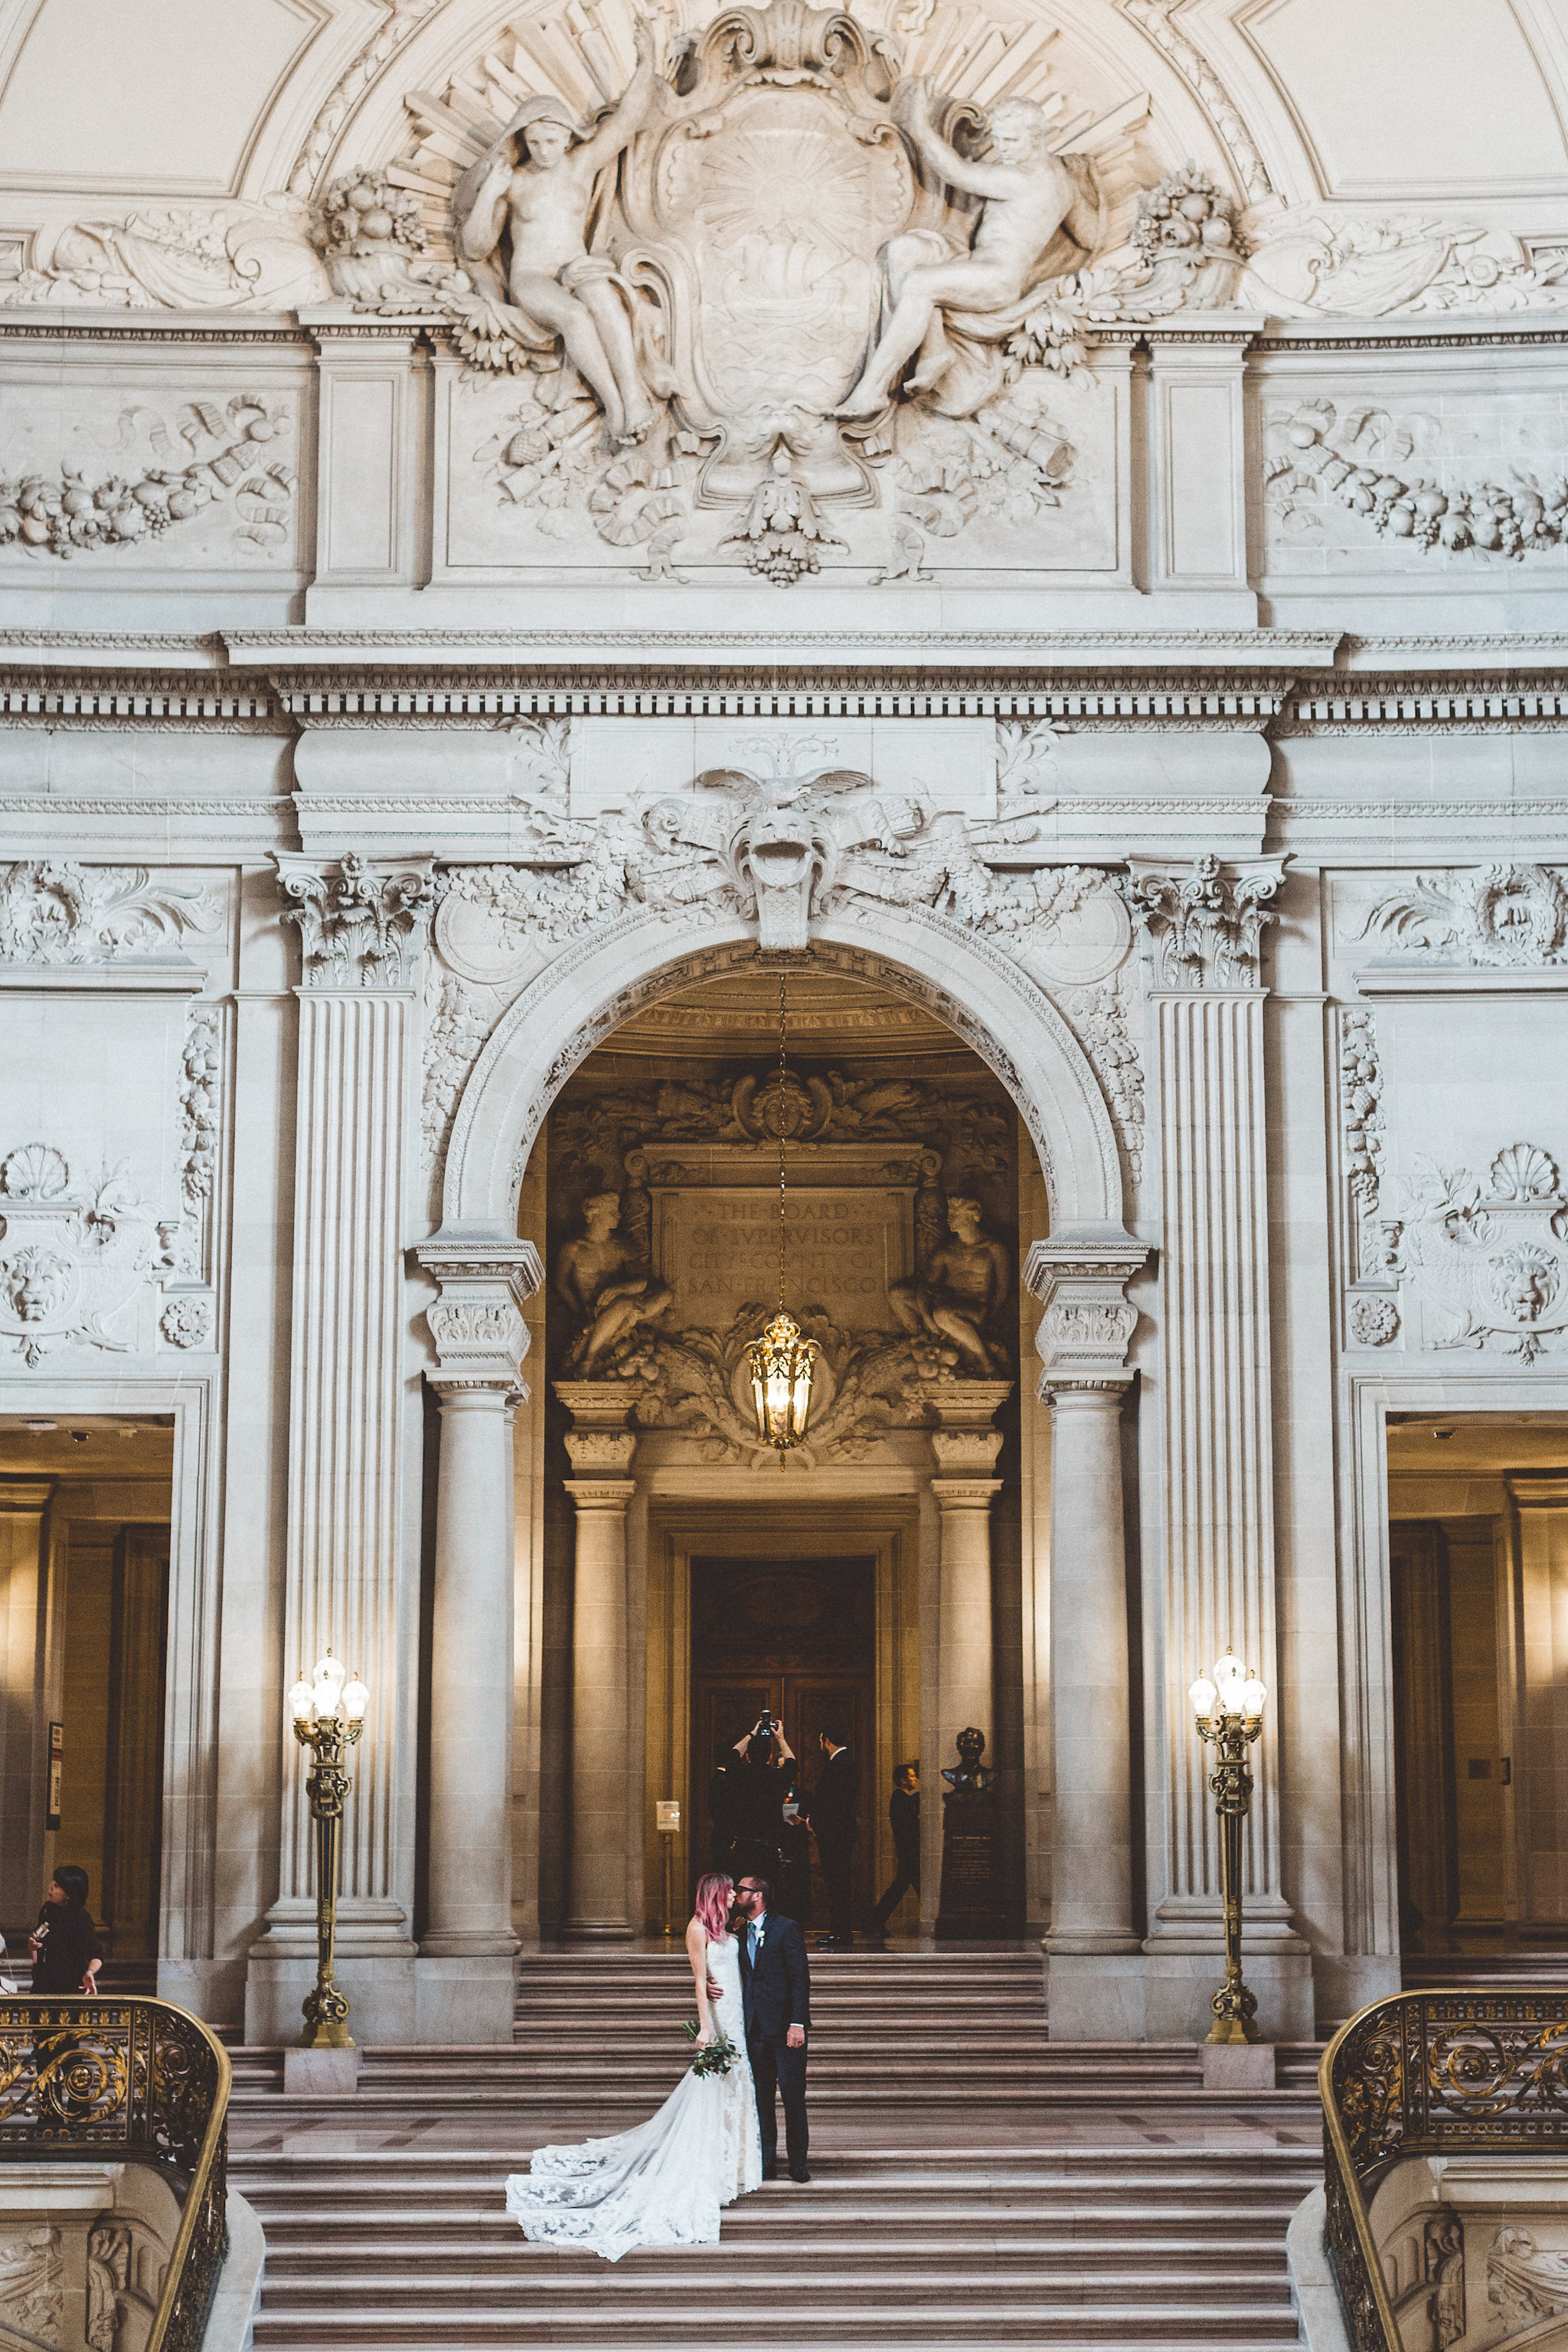 kris-and-andreas-san-francisco-elopement-adventure28.jpg